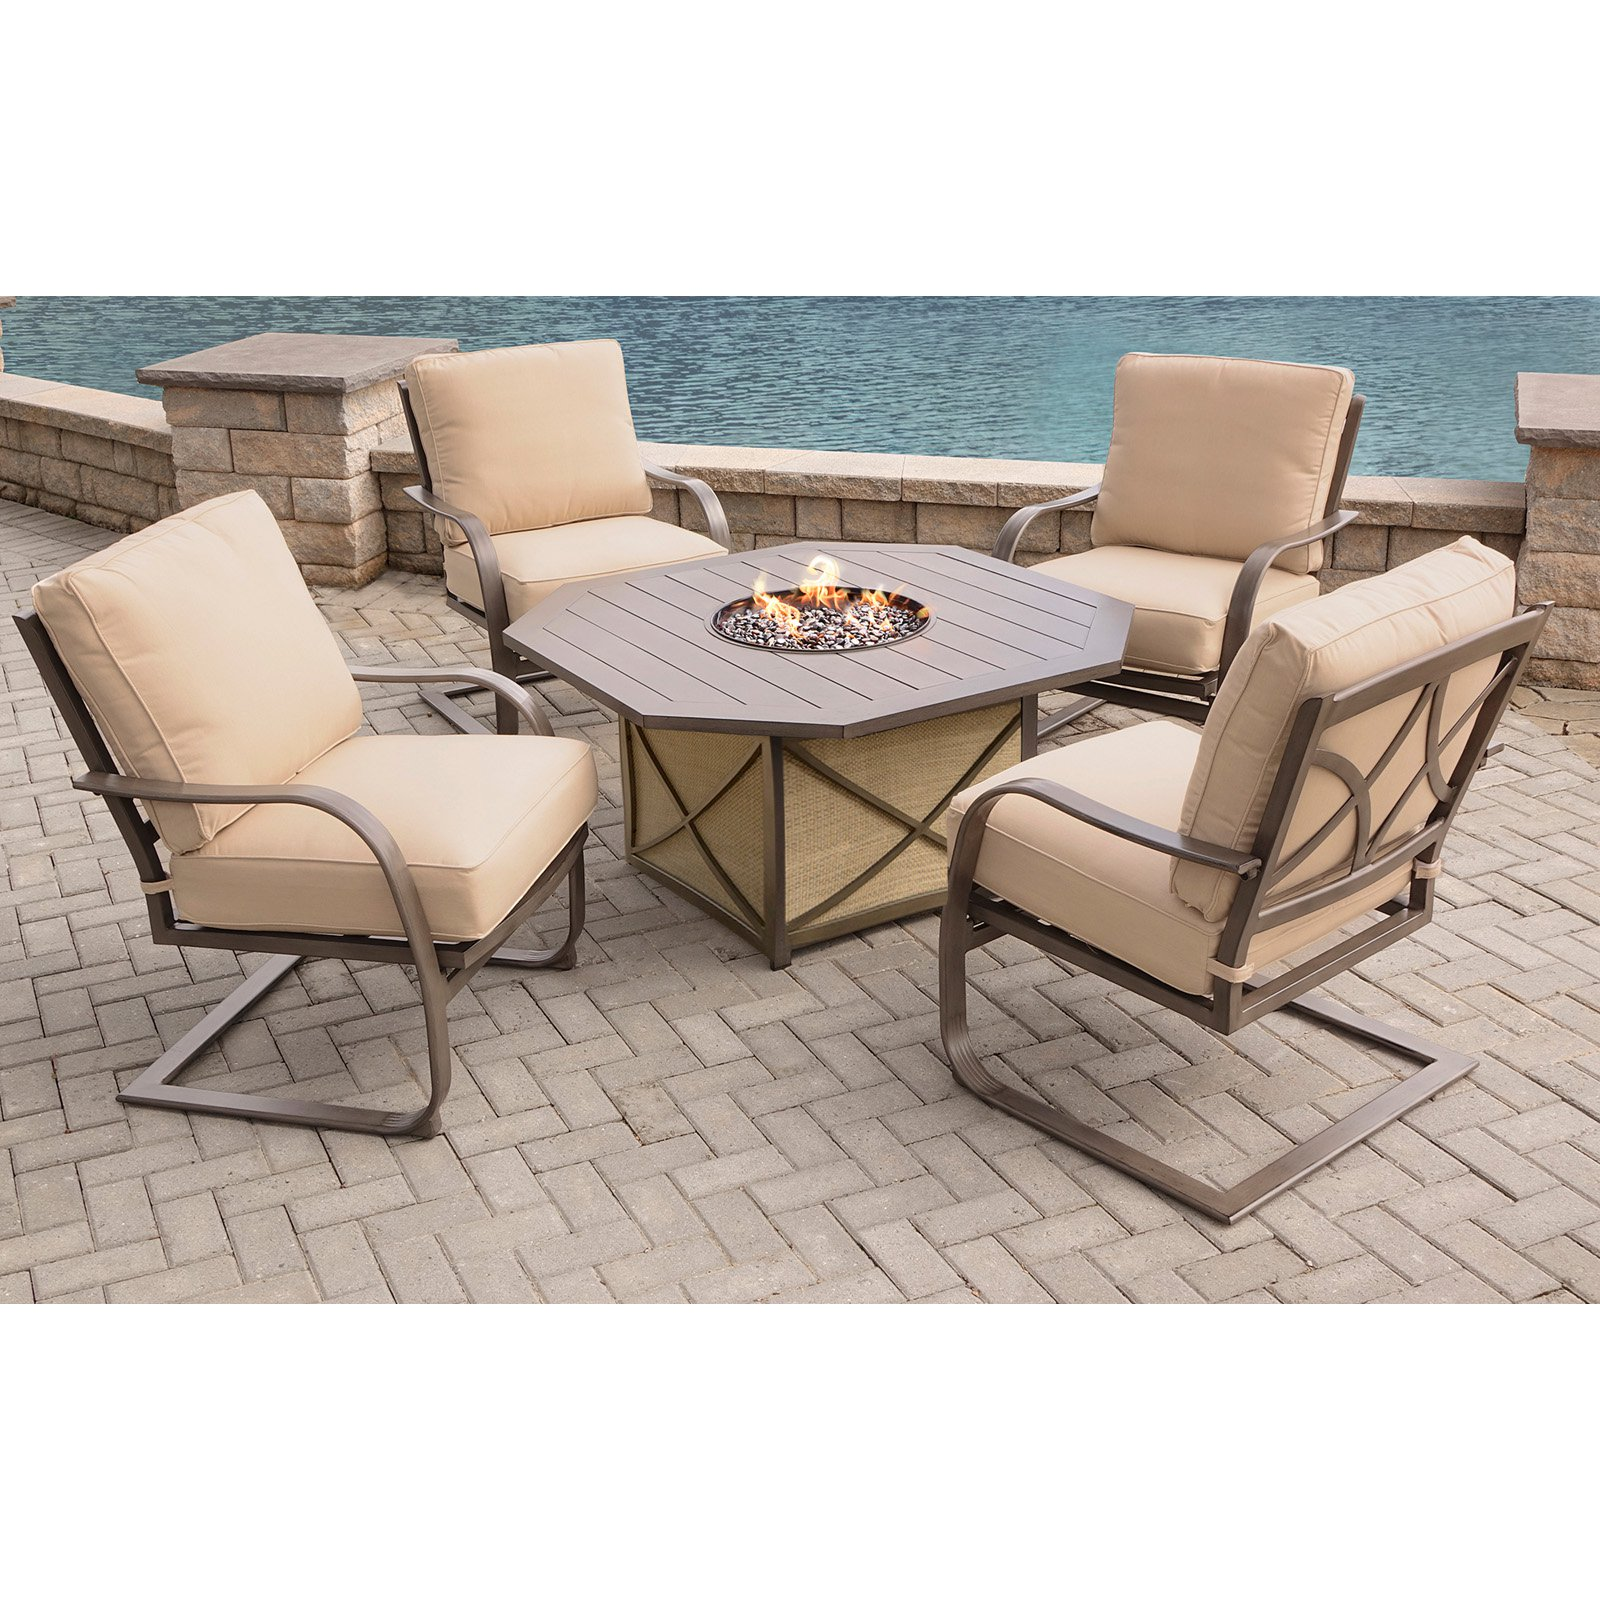 Oakland Living Wood Style Aluminum Natural Gas Octagonal Fire Pit Patio Set with Sunbrella Cushions